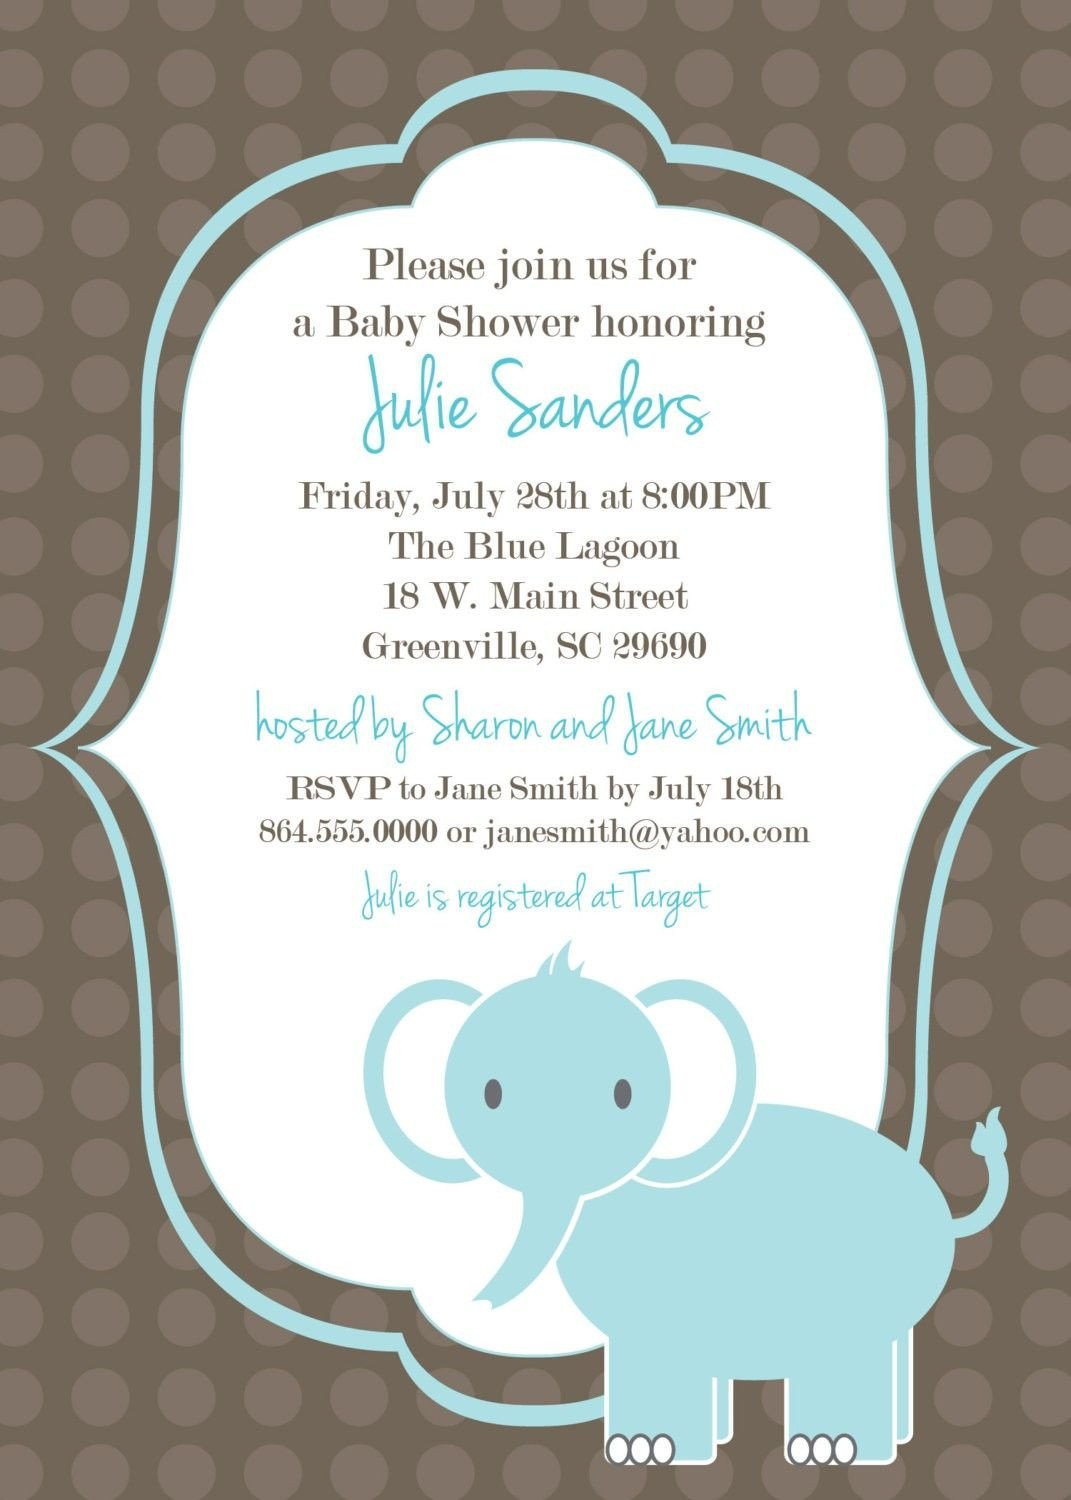 Baby Shower Invitation Template Download Free Template Got the Free Baby Shower